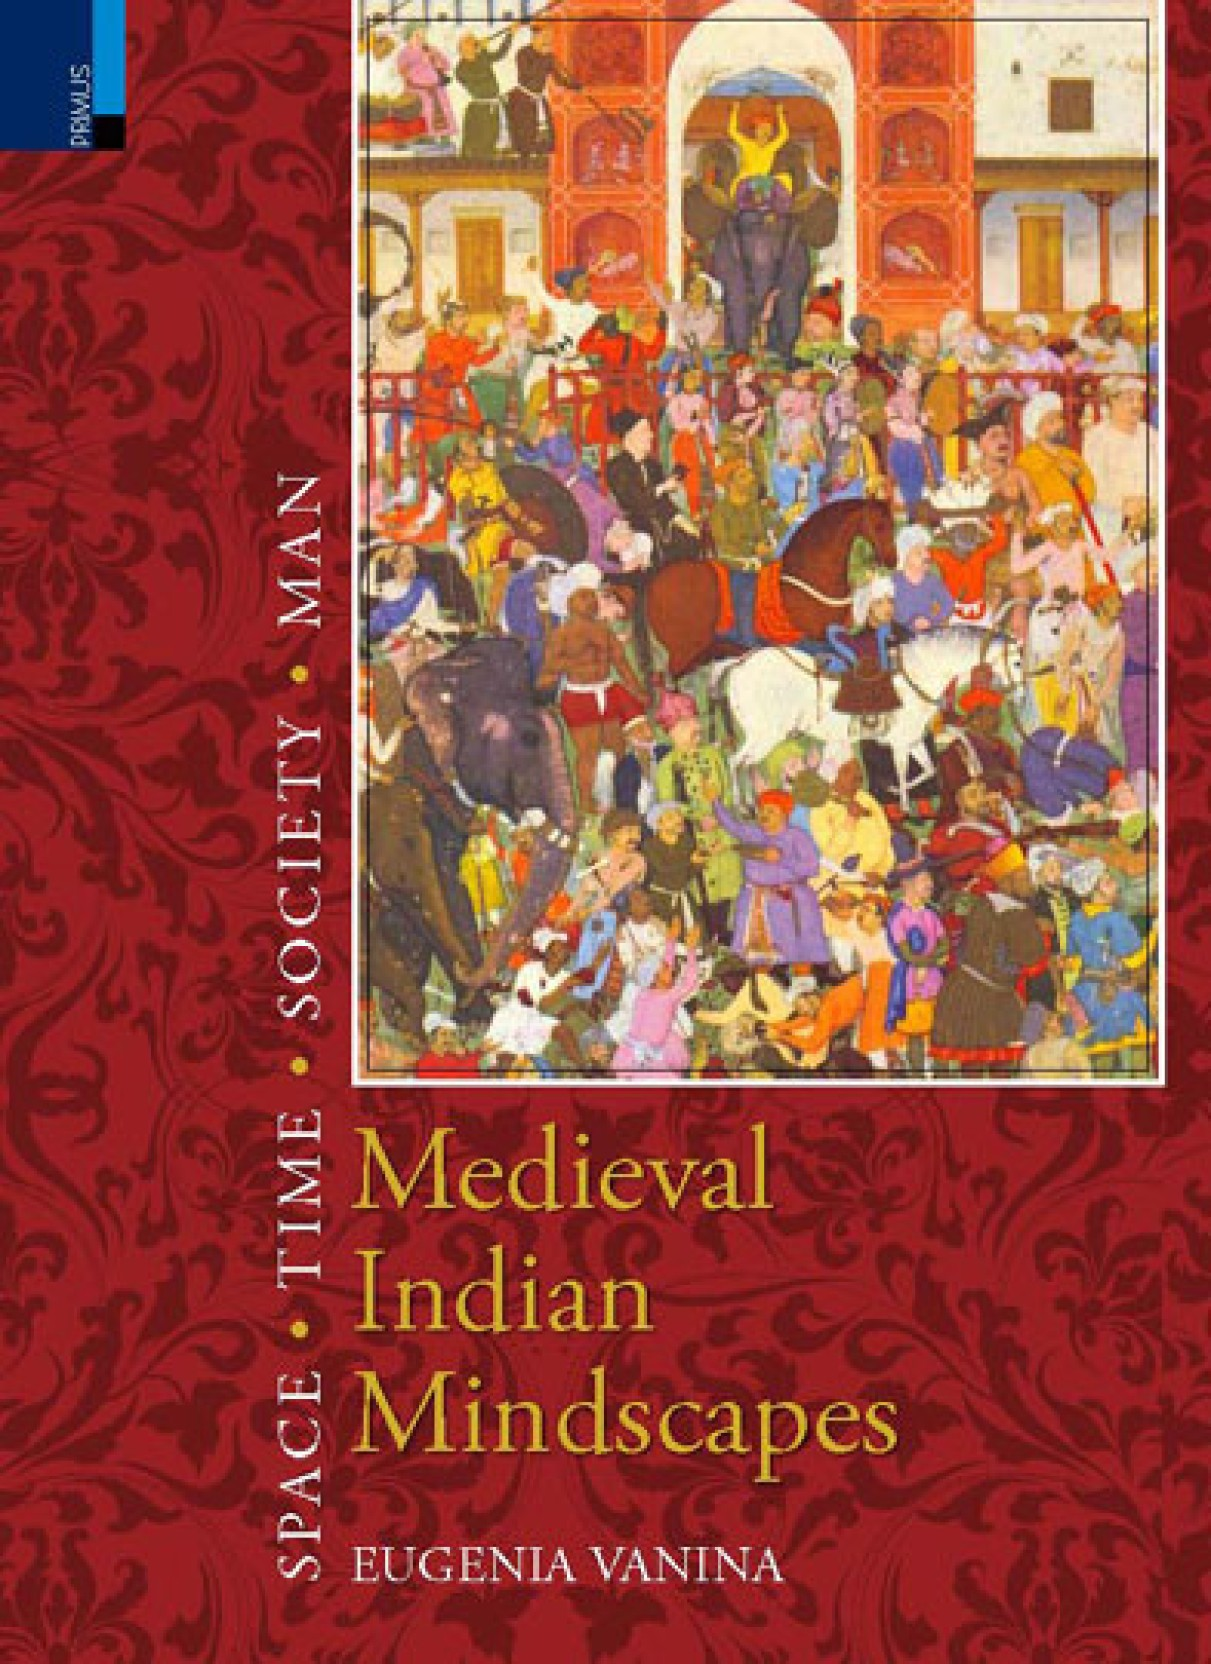 india in medieval time essay Essay on national festivals of india gandhiji was given the person of the year award in 1930 by us's time of independence day in india short essay on.